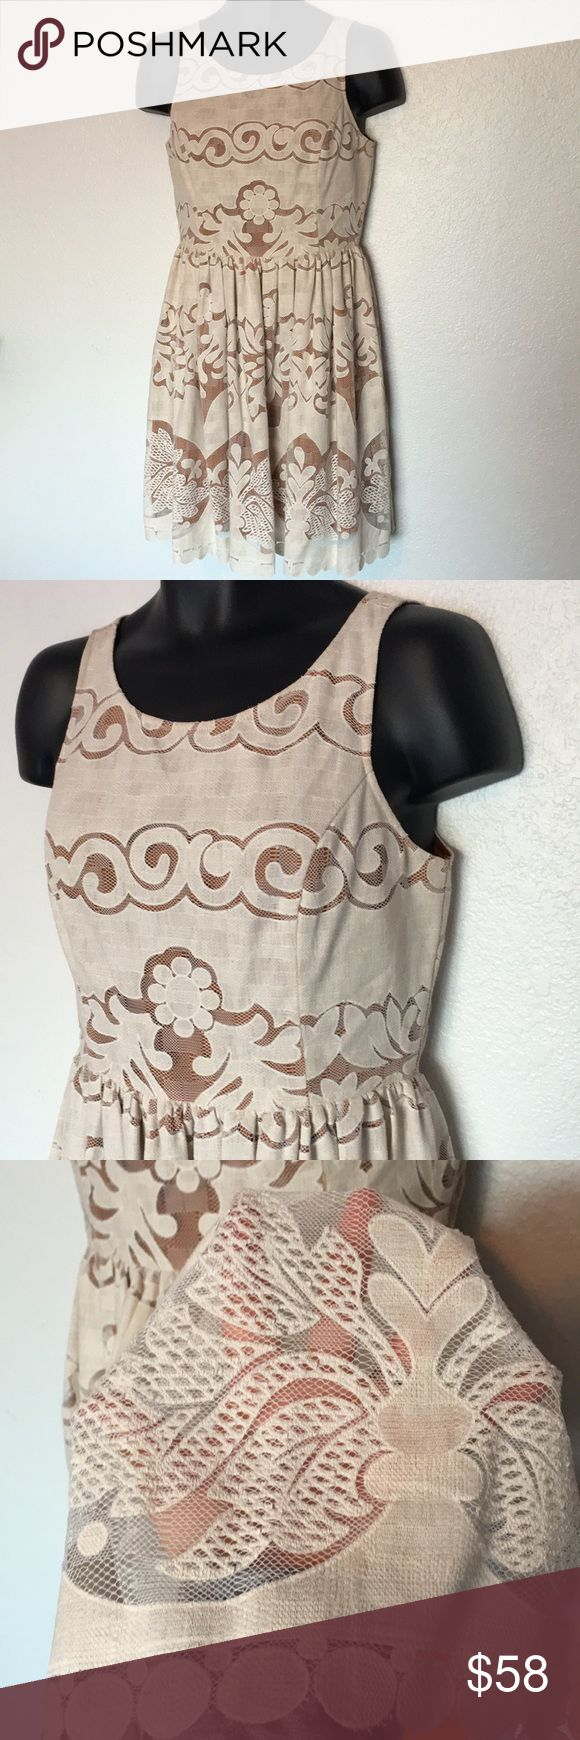 🆕NWT Under Skies Crochet Dress This dress is a beautiful ivory crochet with yellowish orange underlining. Absolutely stunning! NWT, size L. Save on ✈️SHIPPING✈️and 🎁BUNDLE! I even give a discount on 3 or more regularly priced item bundles. I always accept reasonable offers with the offer button! 🚫❌Lowball offers please! Under Skies Dresses